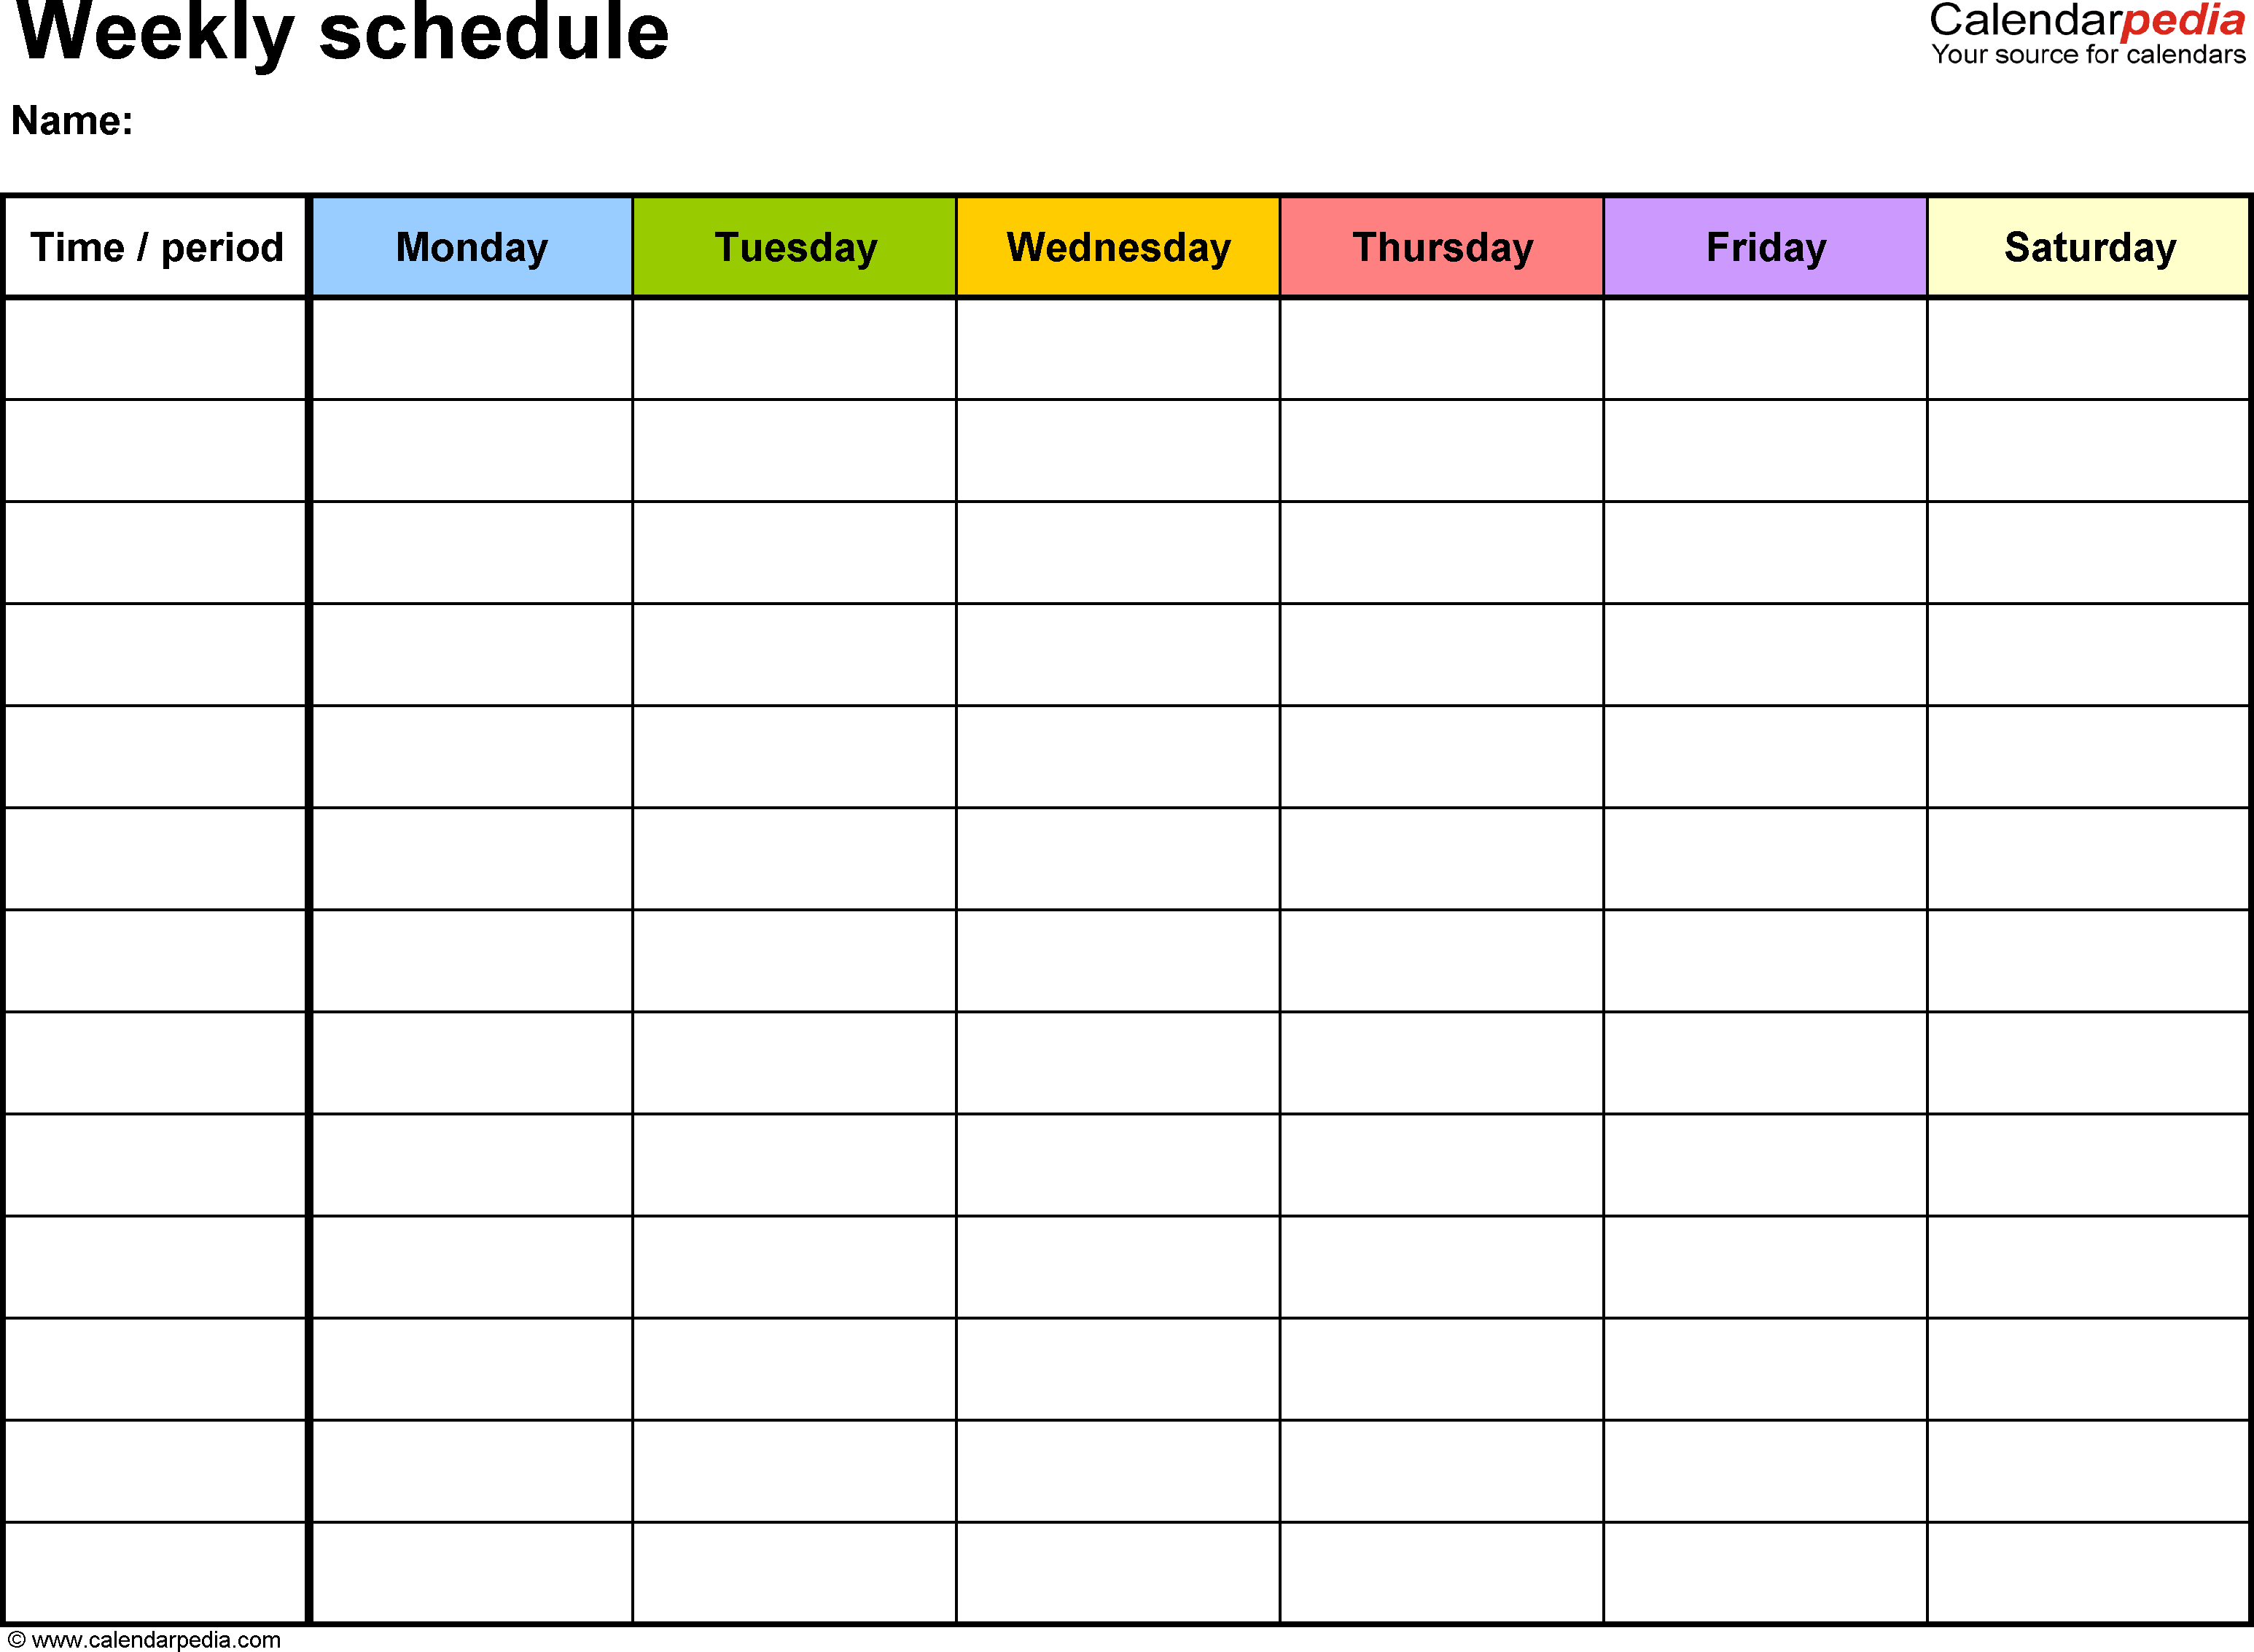 Free Weekly Schedule Templates For Word - 18 Templates intended for Summer Activity Calendar Template